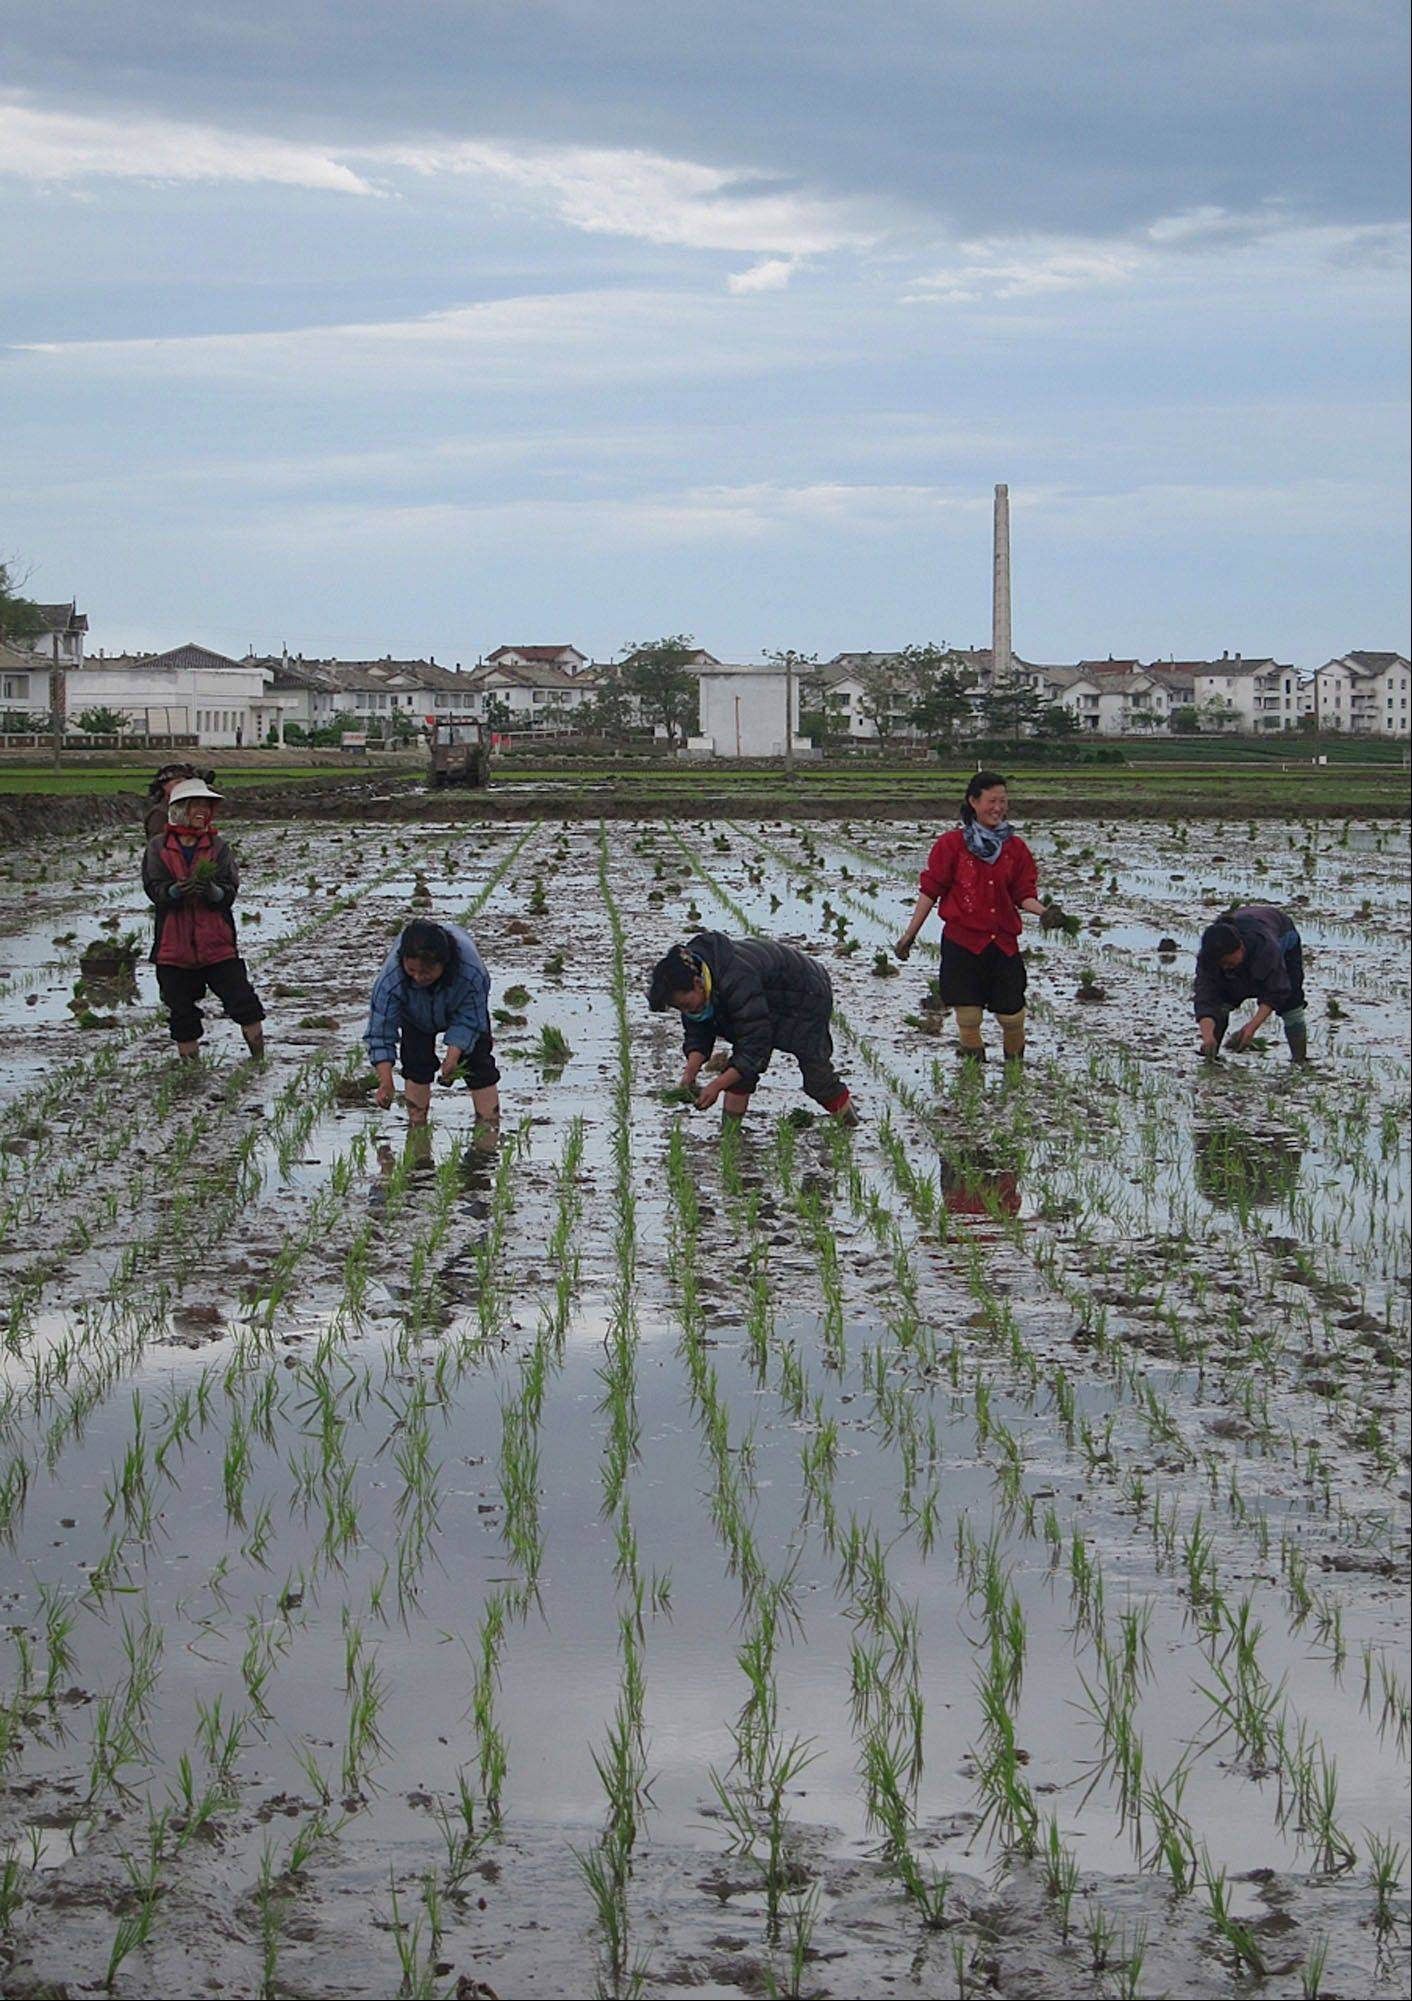 North Korean farm workers transplant rice seedlings Wednesday at Tongbong Cooperative Farm, near Hamhung, North Korea. Farmers in North Korea have confirmed that they have begun carrying out new economic policies designed to boost productivity by giving managers and workers financial incentives.